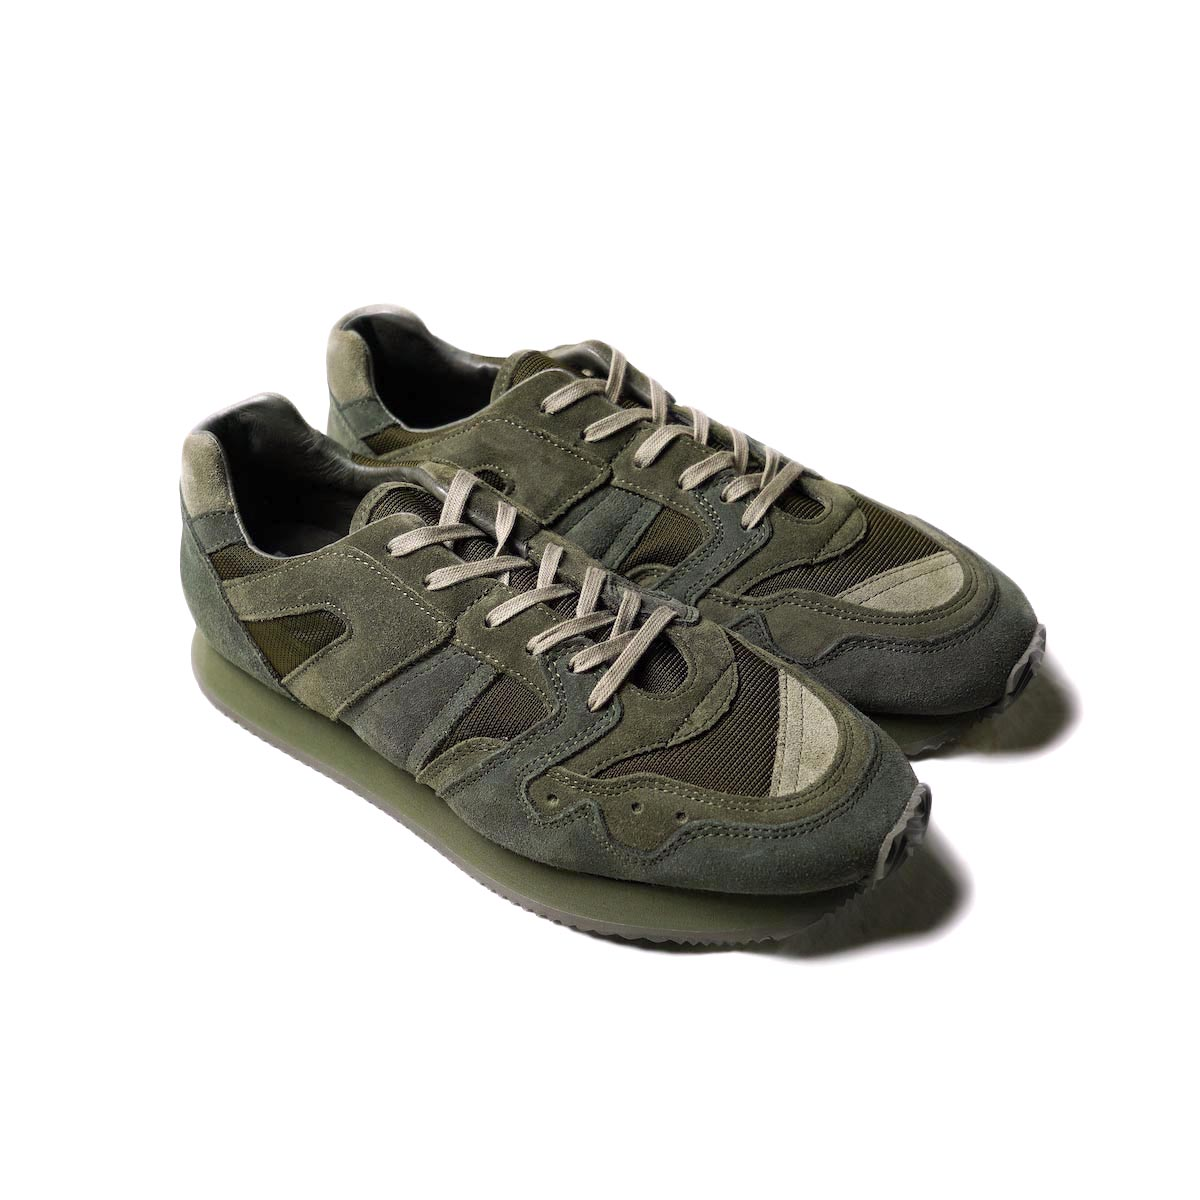 Blurhms × REPRODUCTION OF FOUND / Multi Military Trainer (Brown)